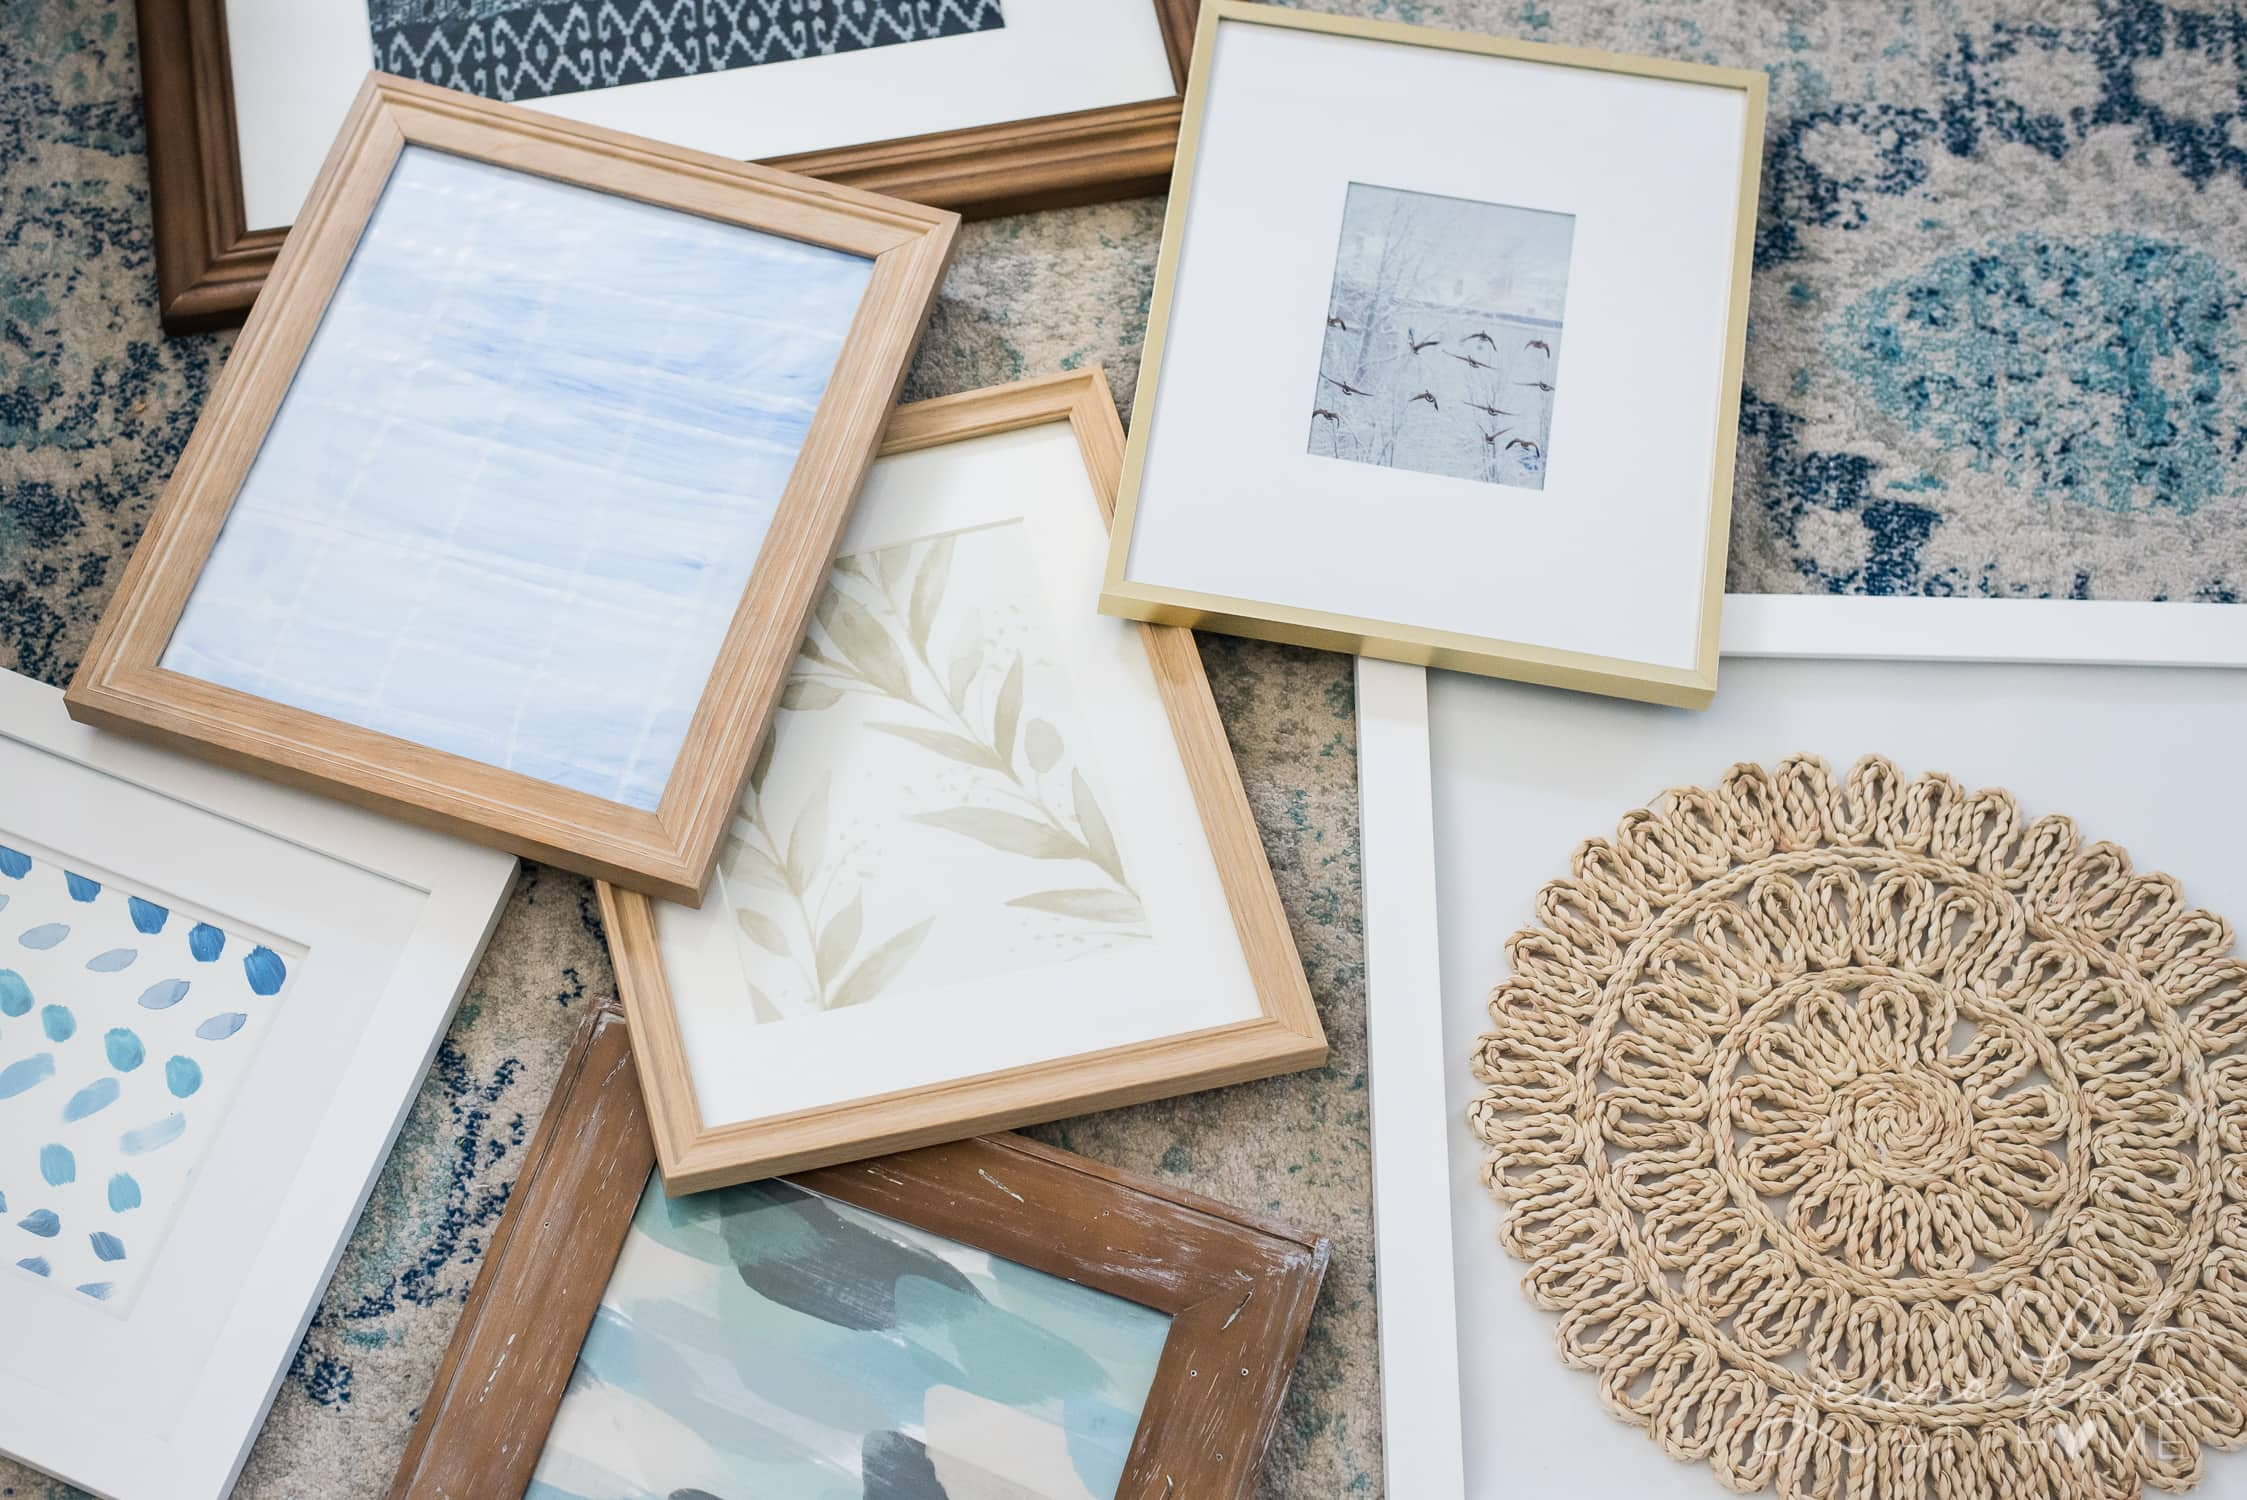 DIY art ideas that don't involve going to the store